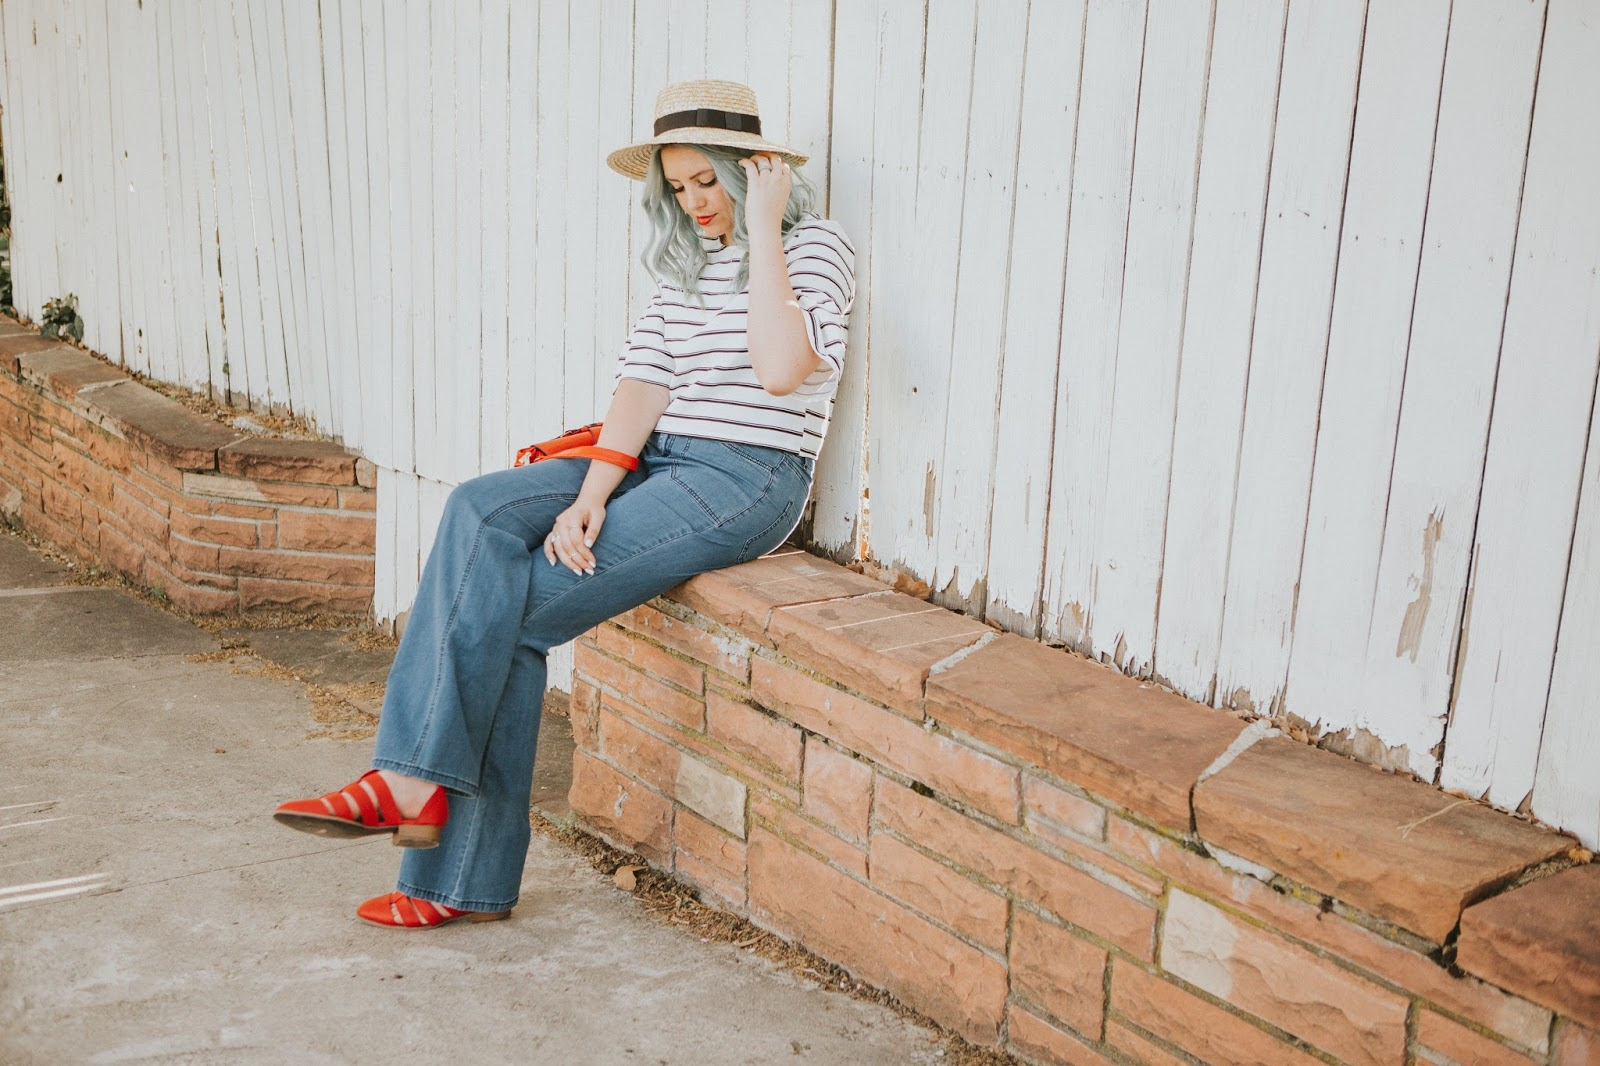 Blue Hair, Stripes, Red Shoes